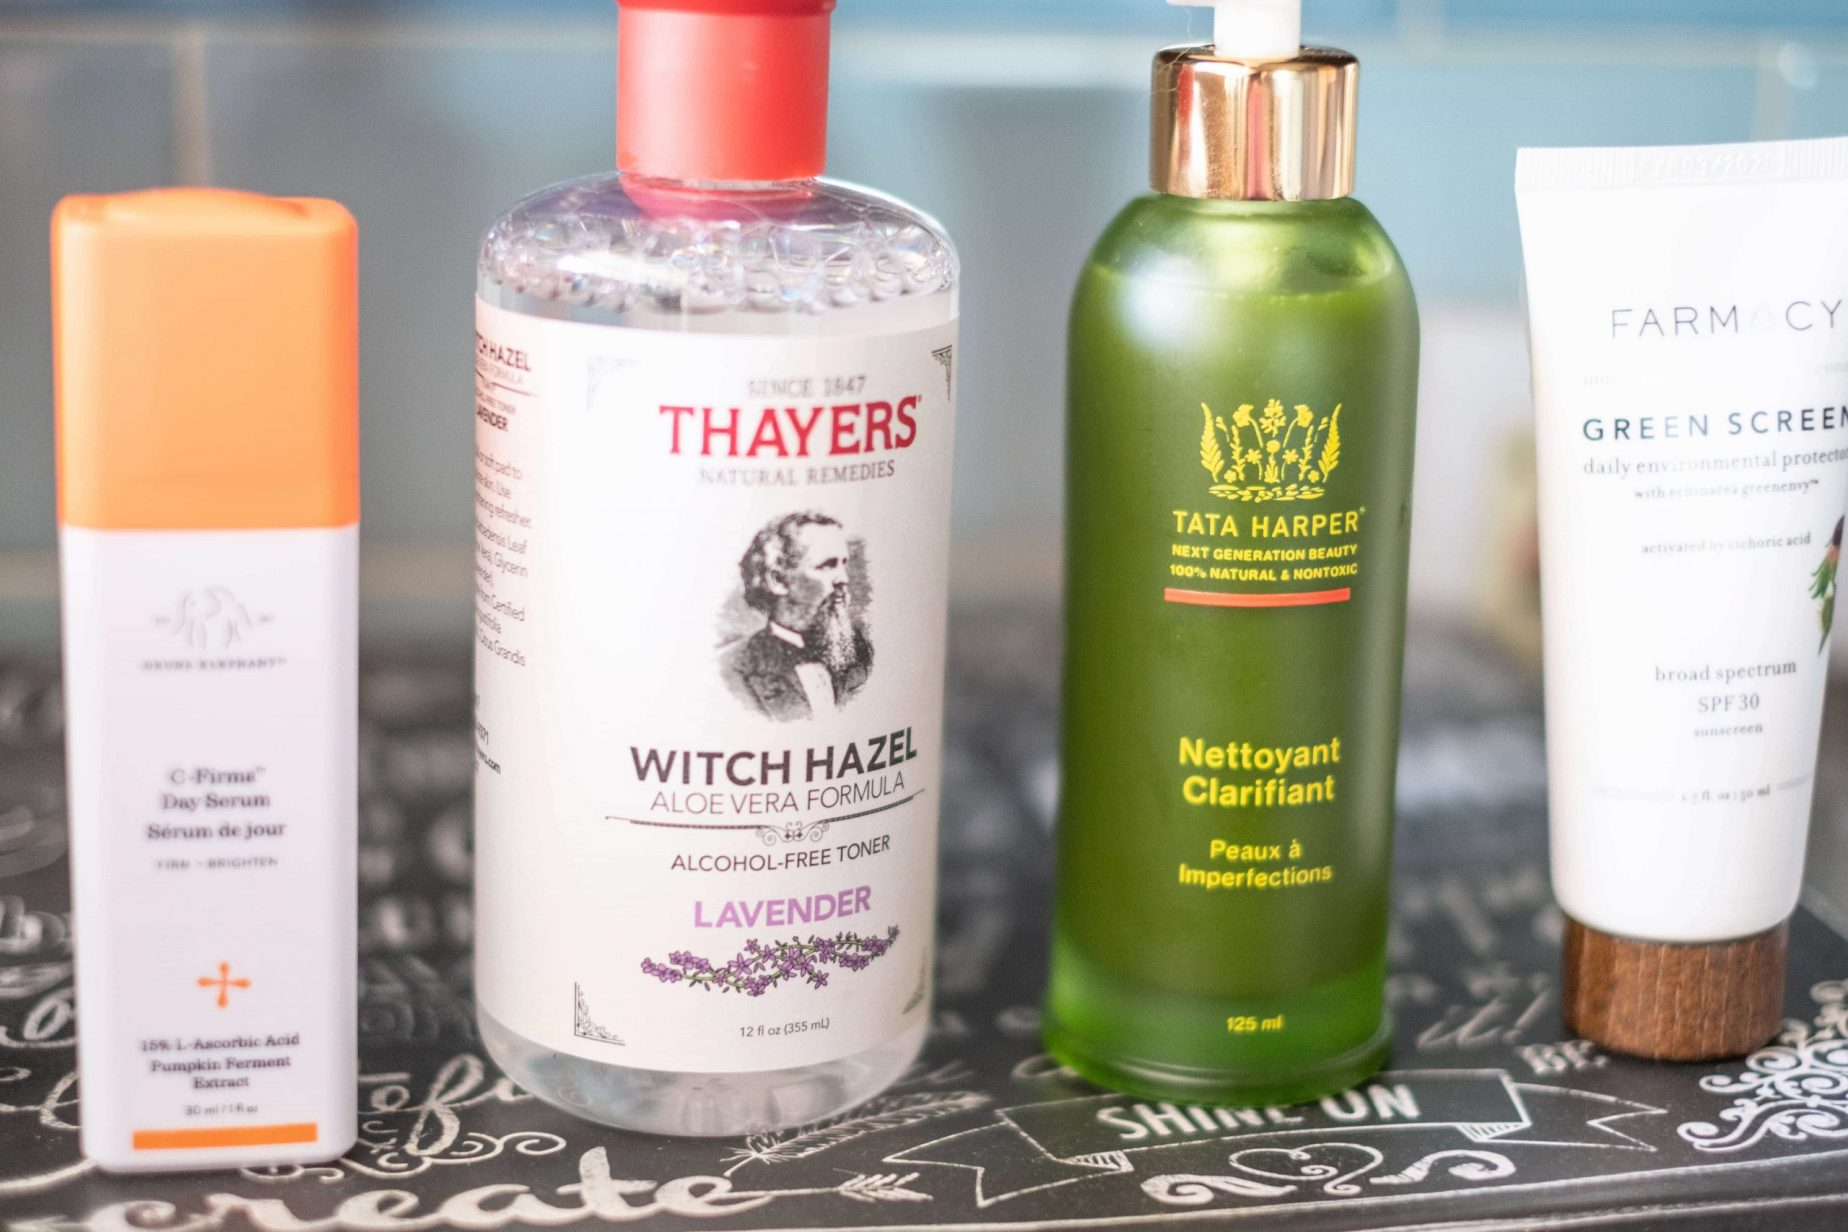 Clean Skincare Products I Can't Get Enough Of #whatsavvysaid #cleanskincare #nontoxicbeauty #tataharper #witchhazel #drunkelephant #farmacy #beautycounter #moisturizer